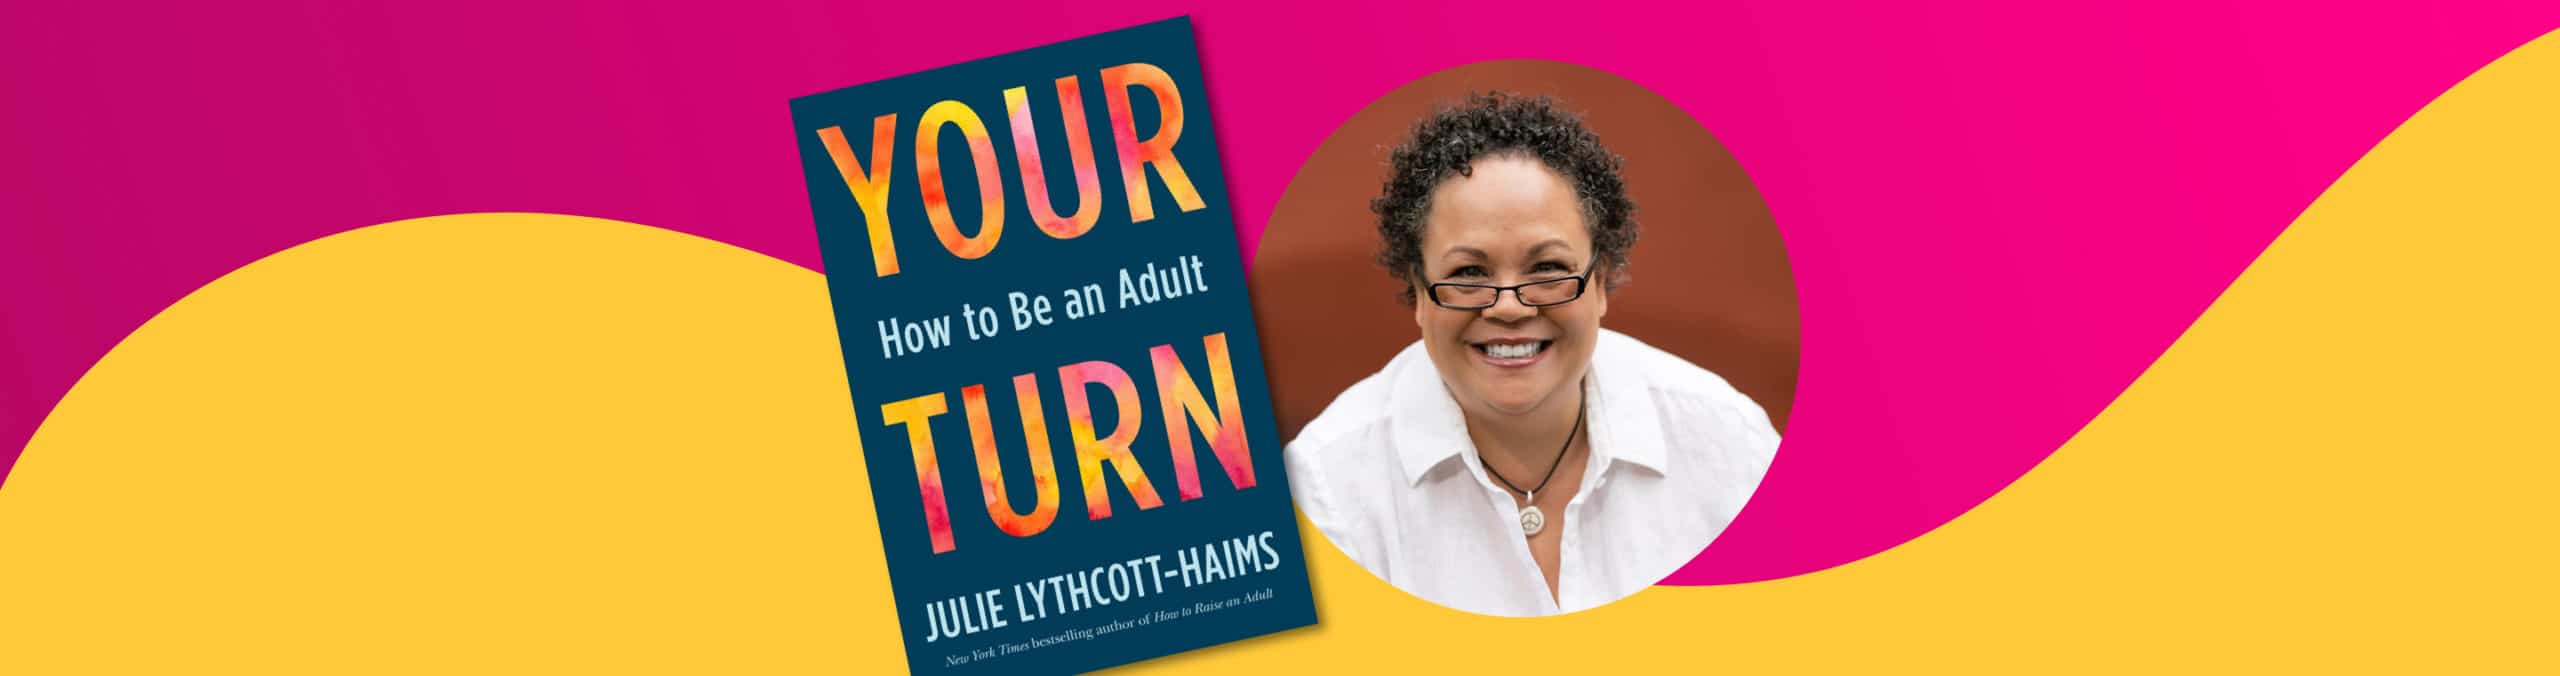 Author Julie Lythcott-Haims on what it means to be an adult